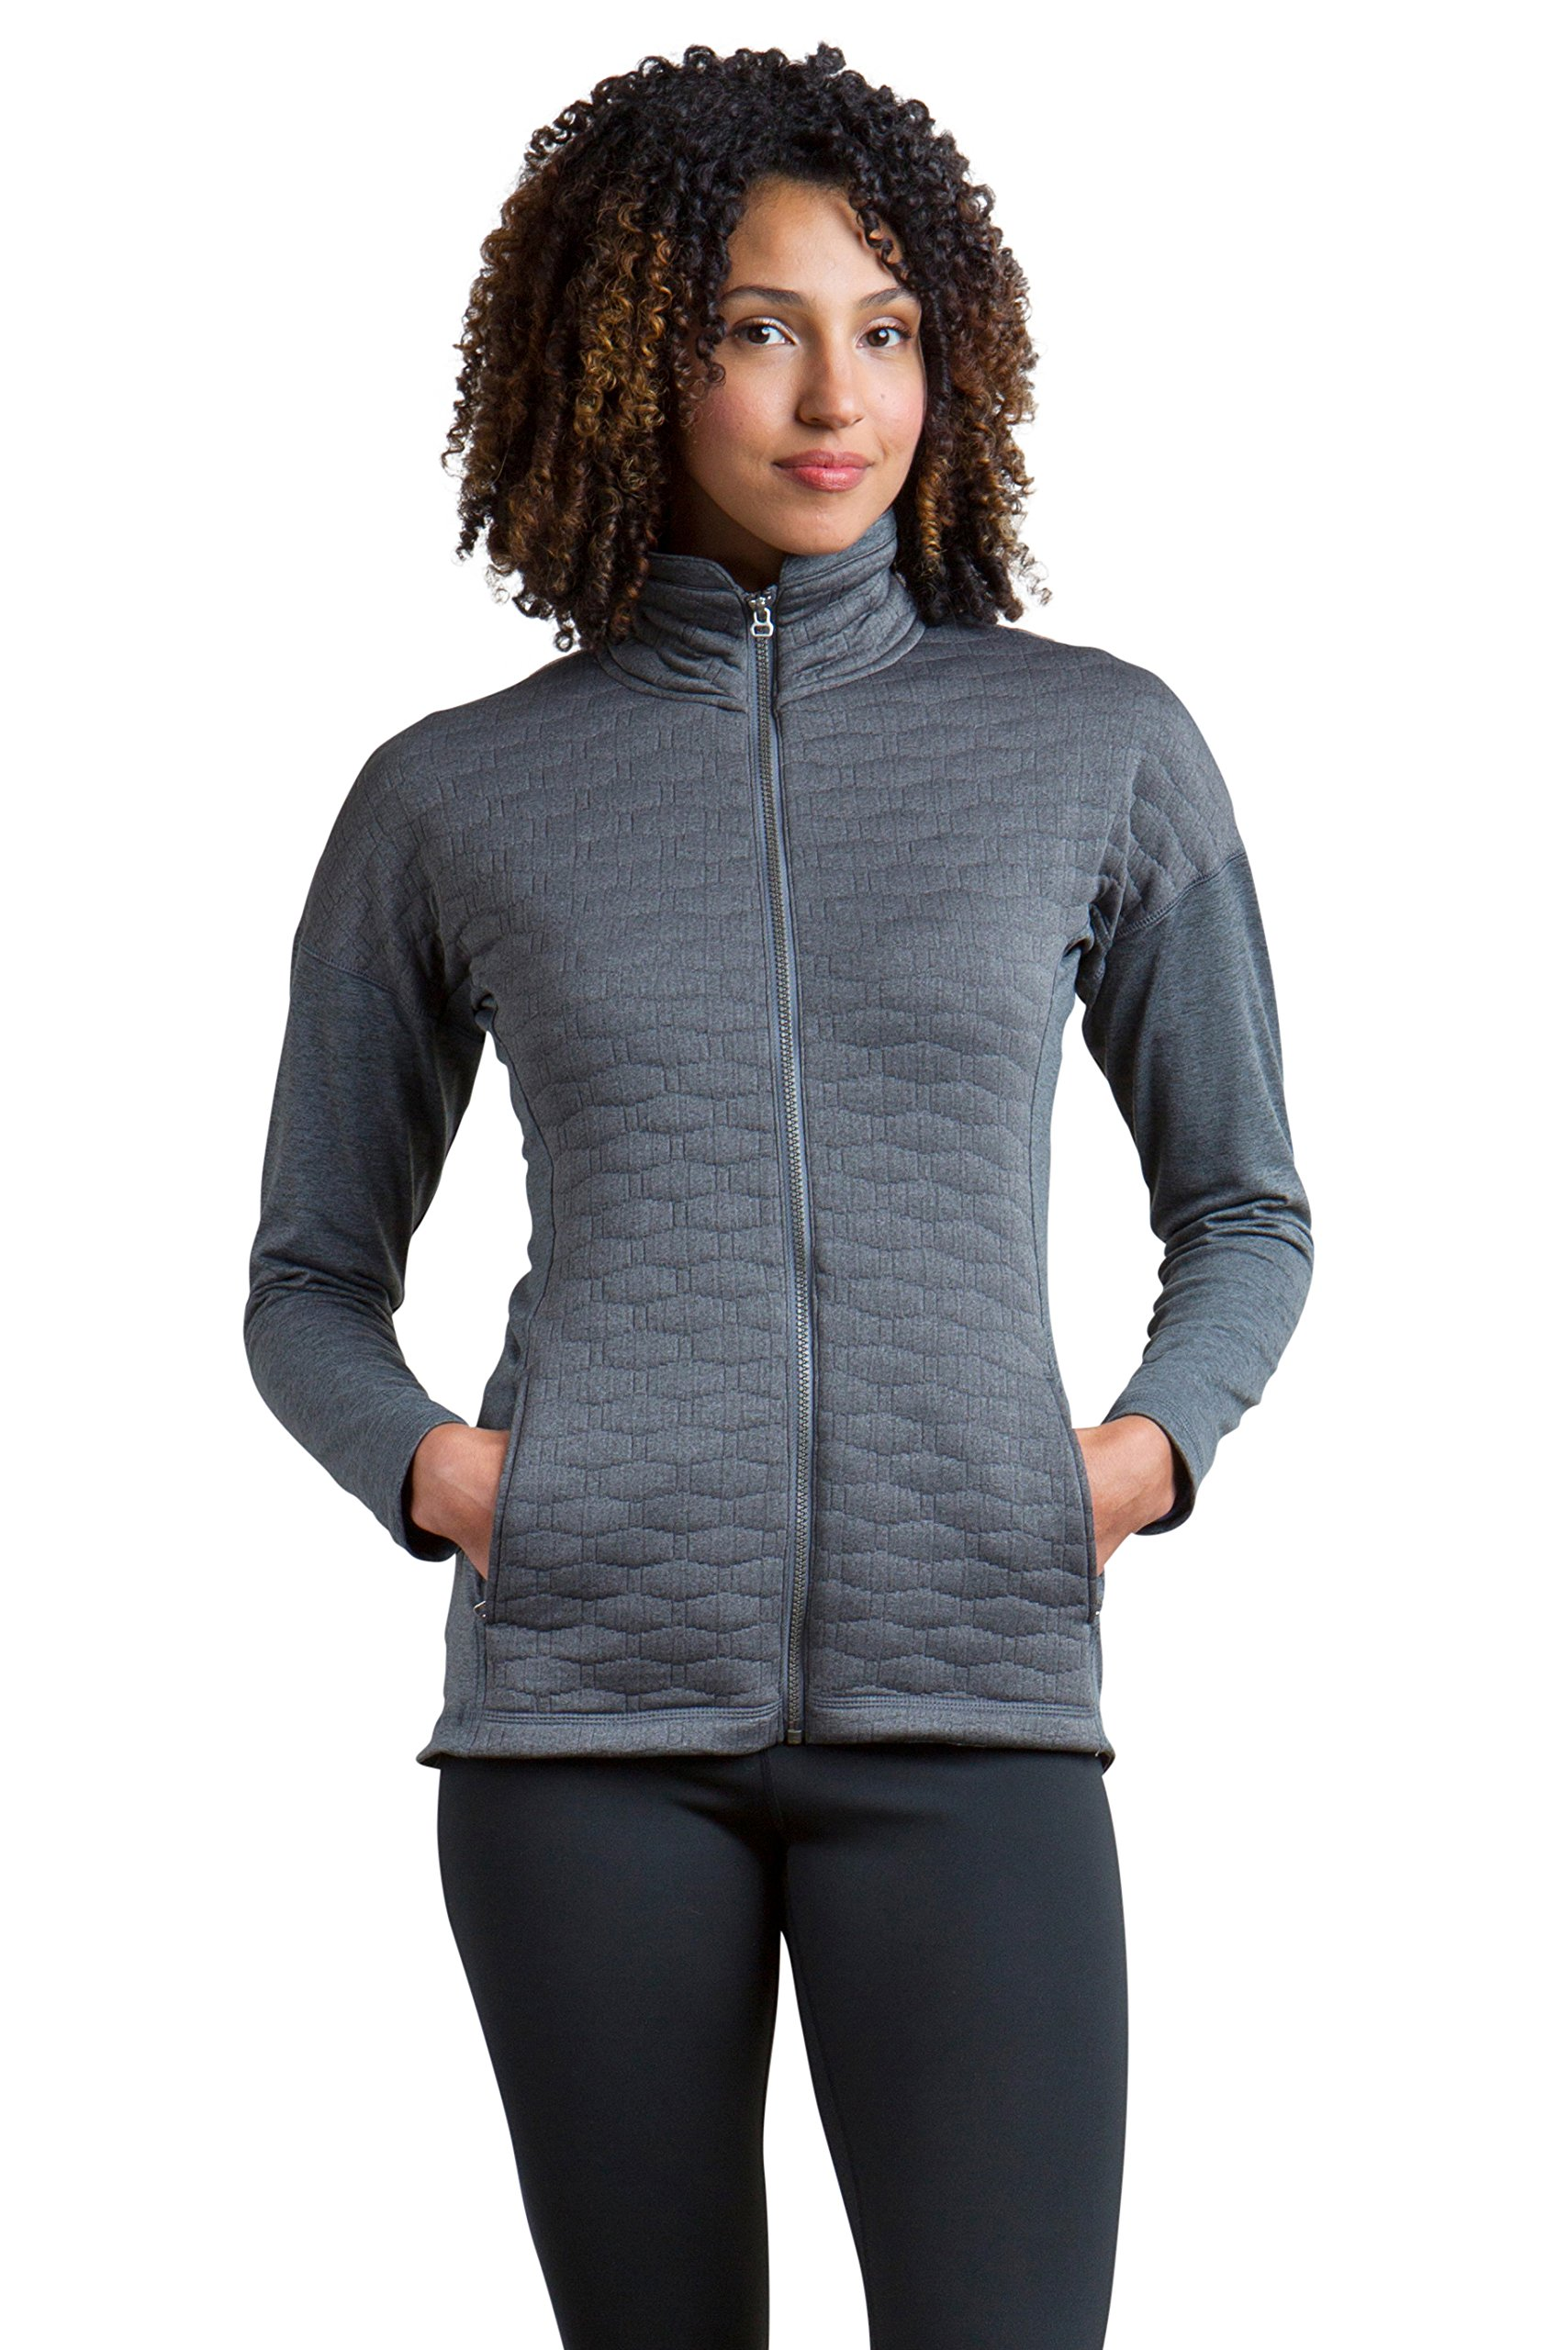 ExOfficio Women's Kelowna Full Zip, Grey Heather, Medium